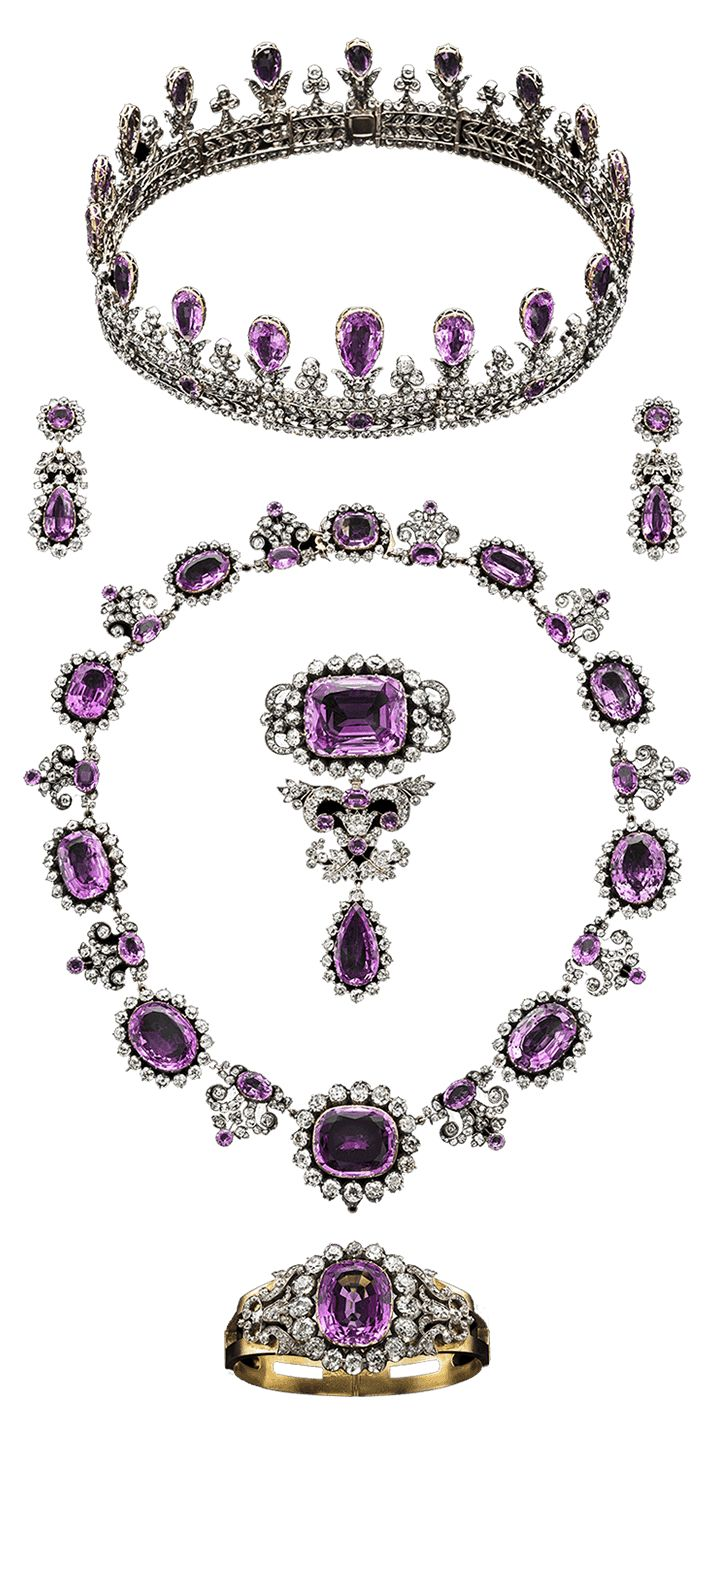 Amythest parure - Sweden's royal jewels......AND my birthstone...love it/them :)